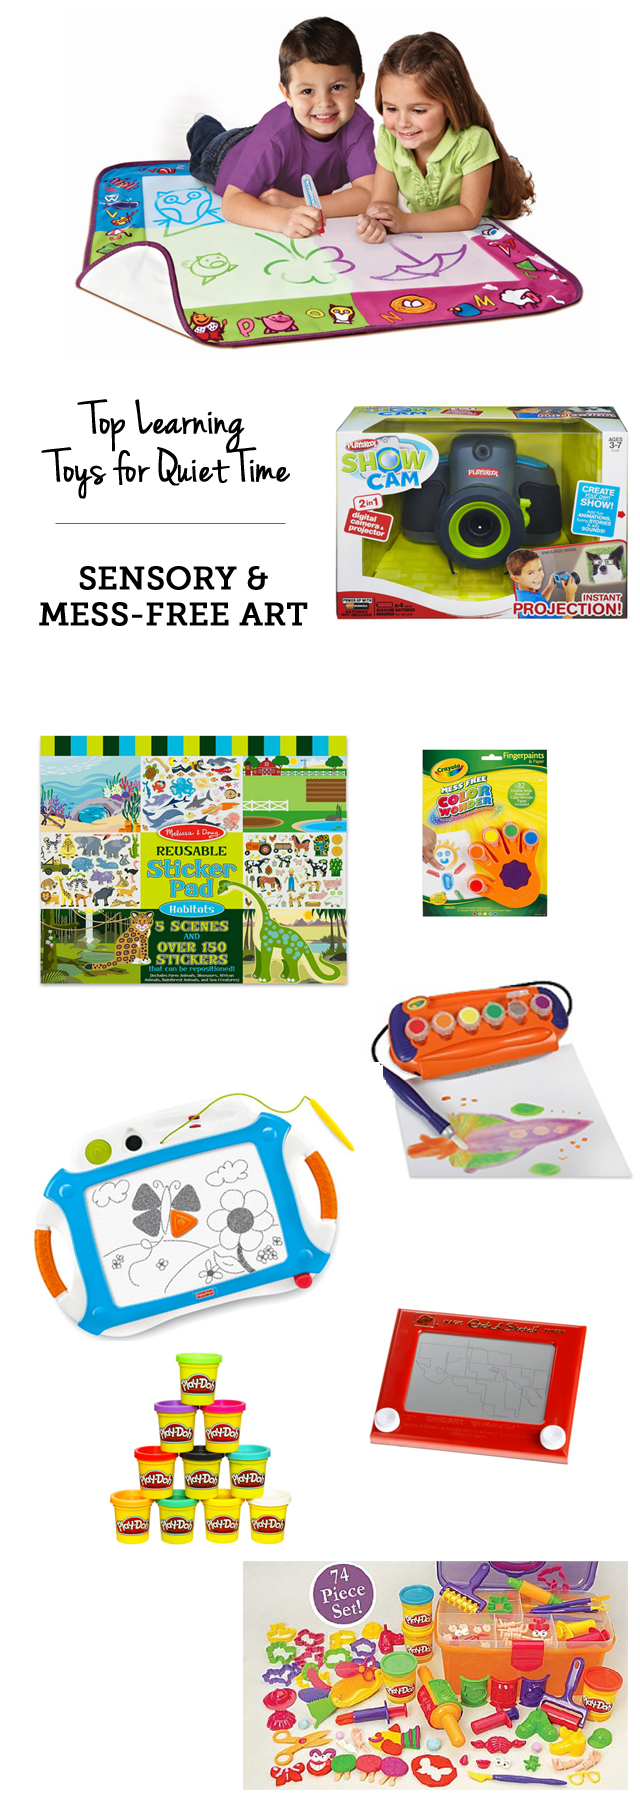 Top learning toys for quiet time: mess-free art supplies - Perfect when you need to cook dinner, do laundry, etc.!